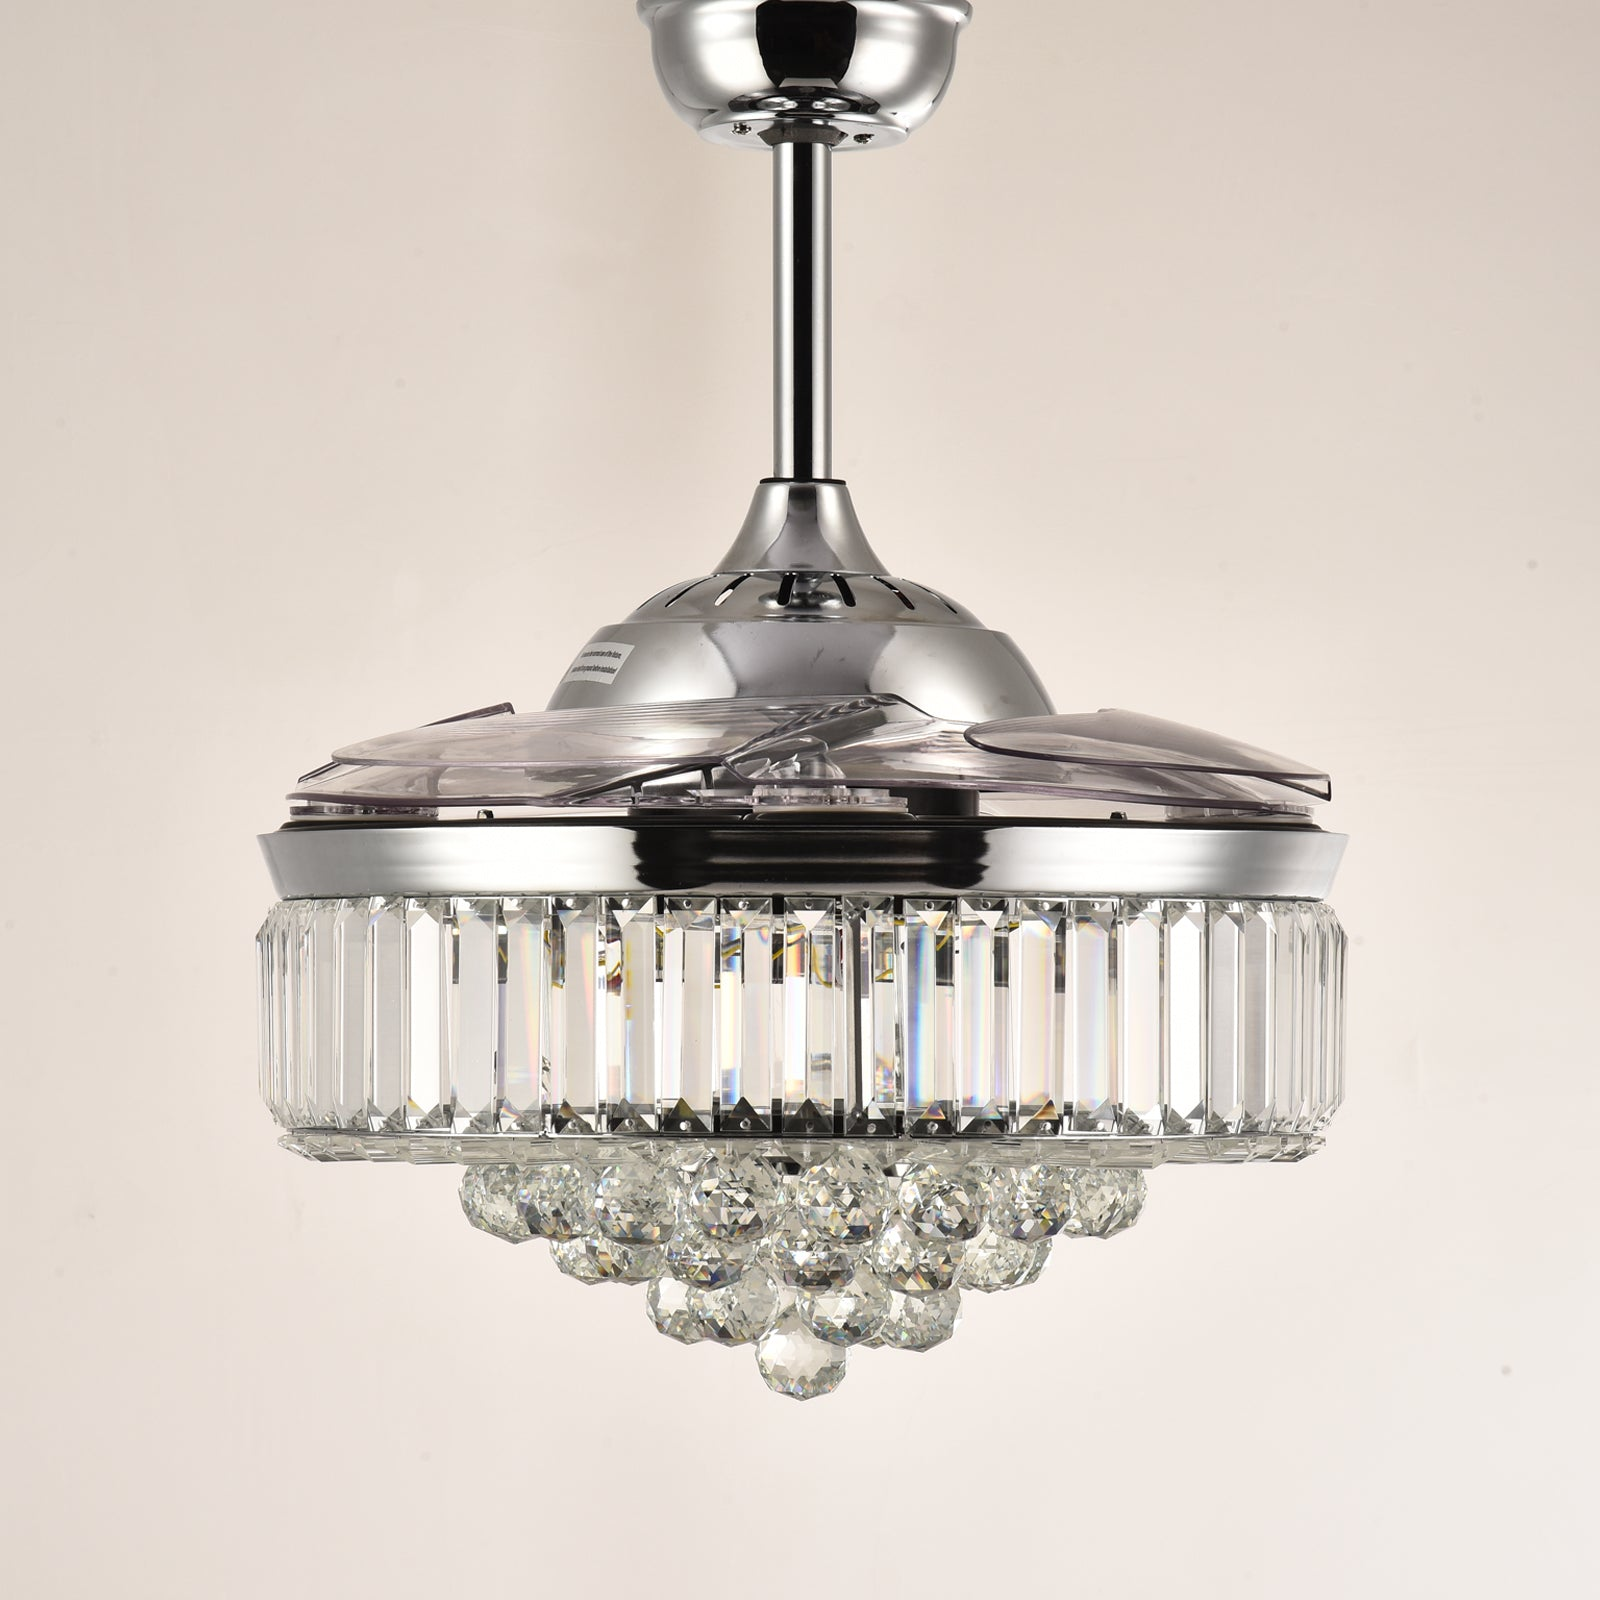 Crystal Ceiling Fan - Retractable Ceiling Fan Chandelier - Sofary